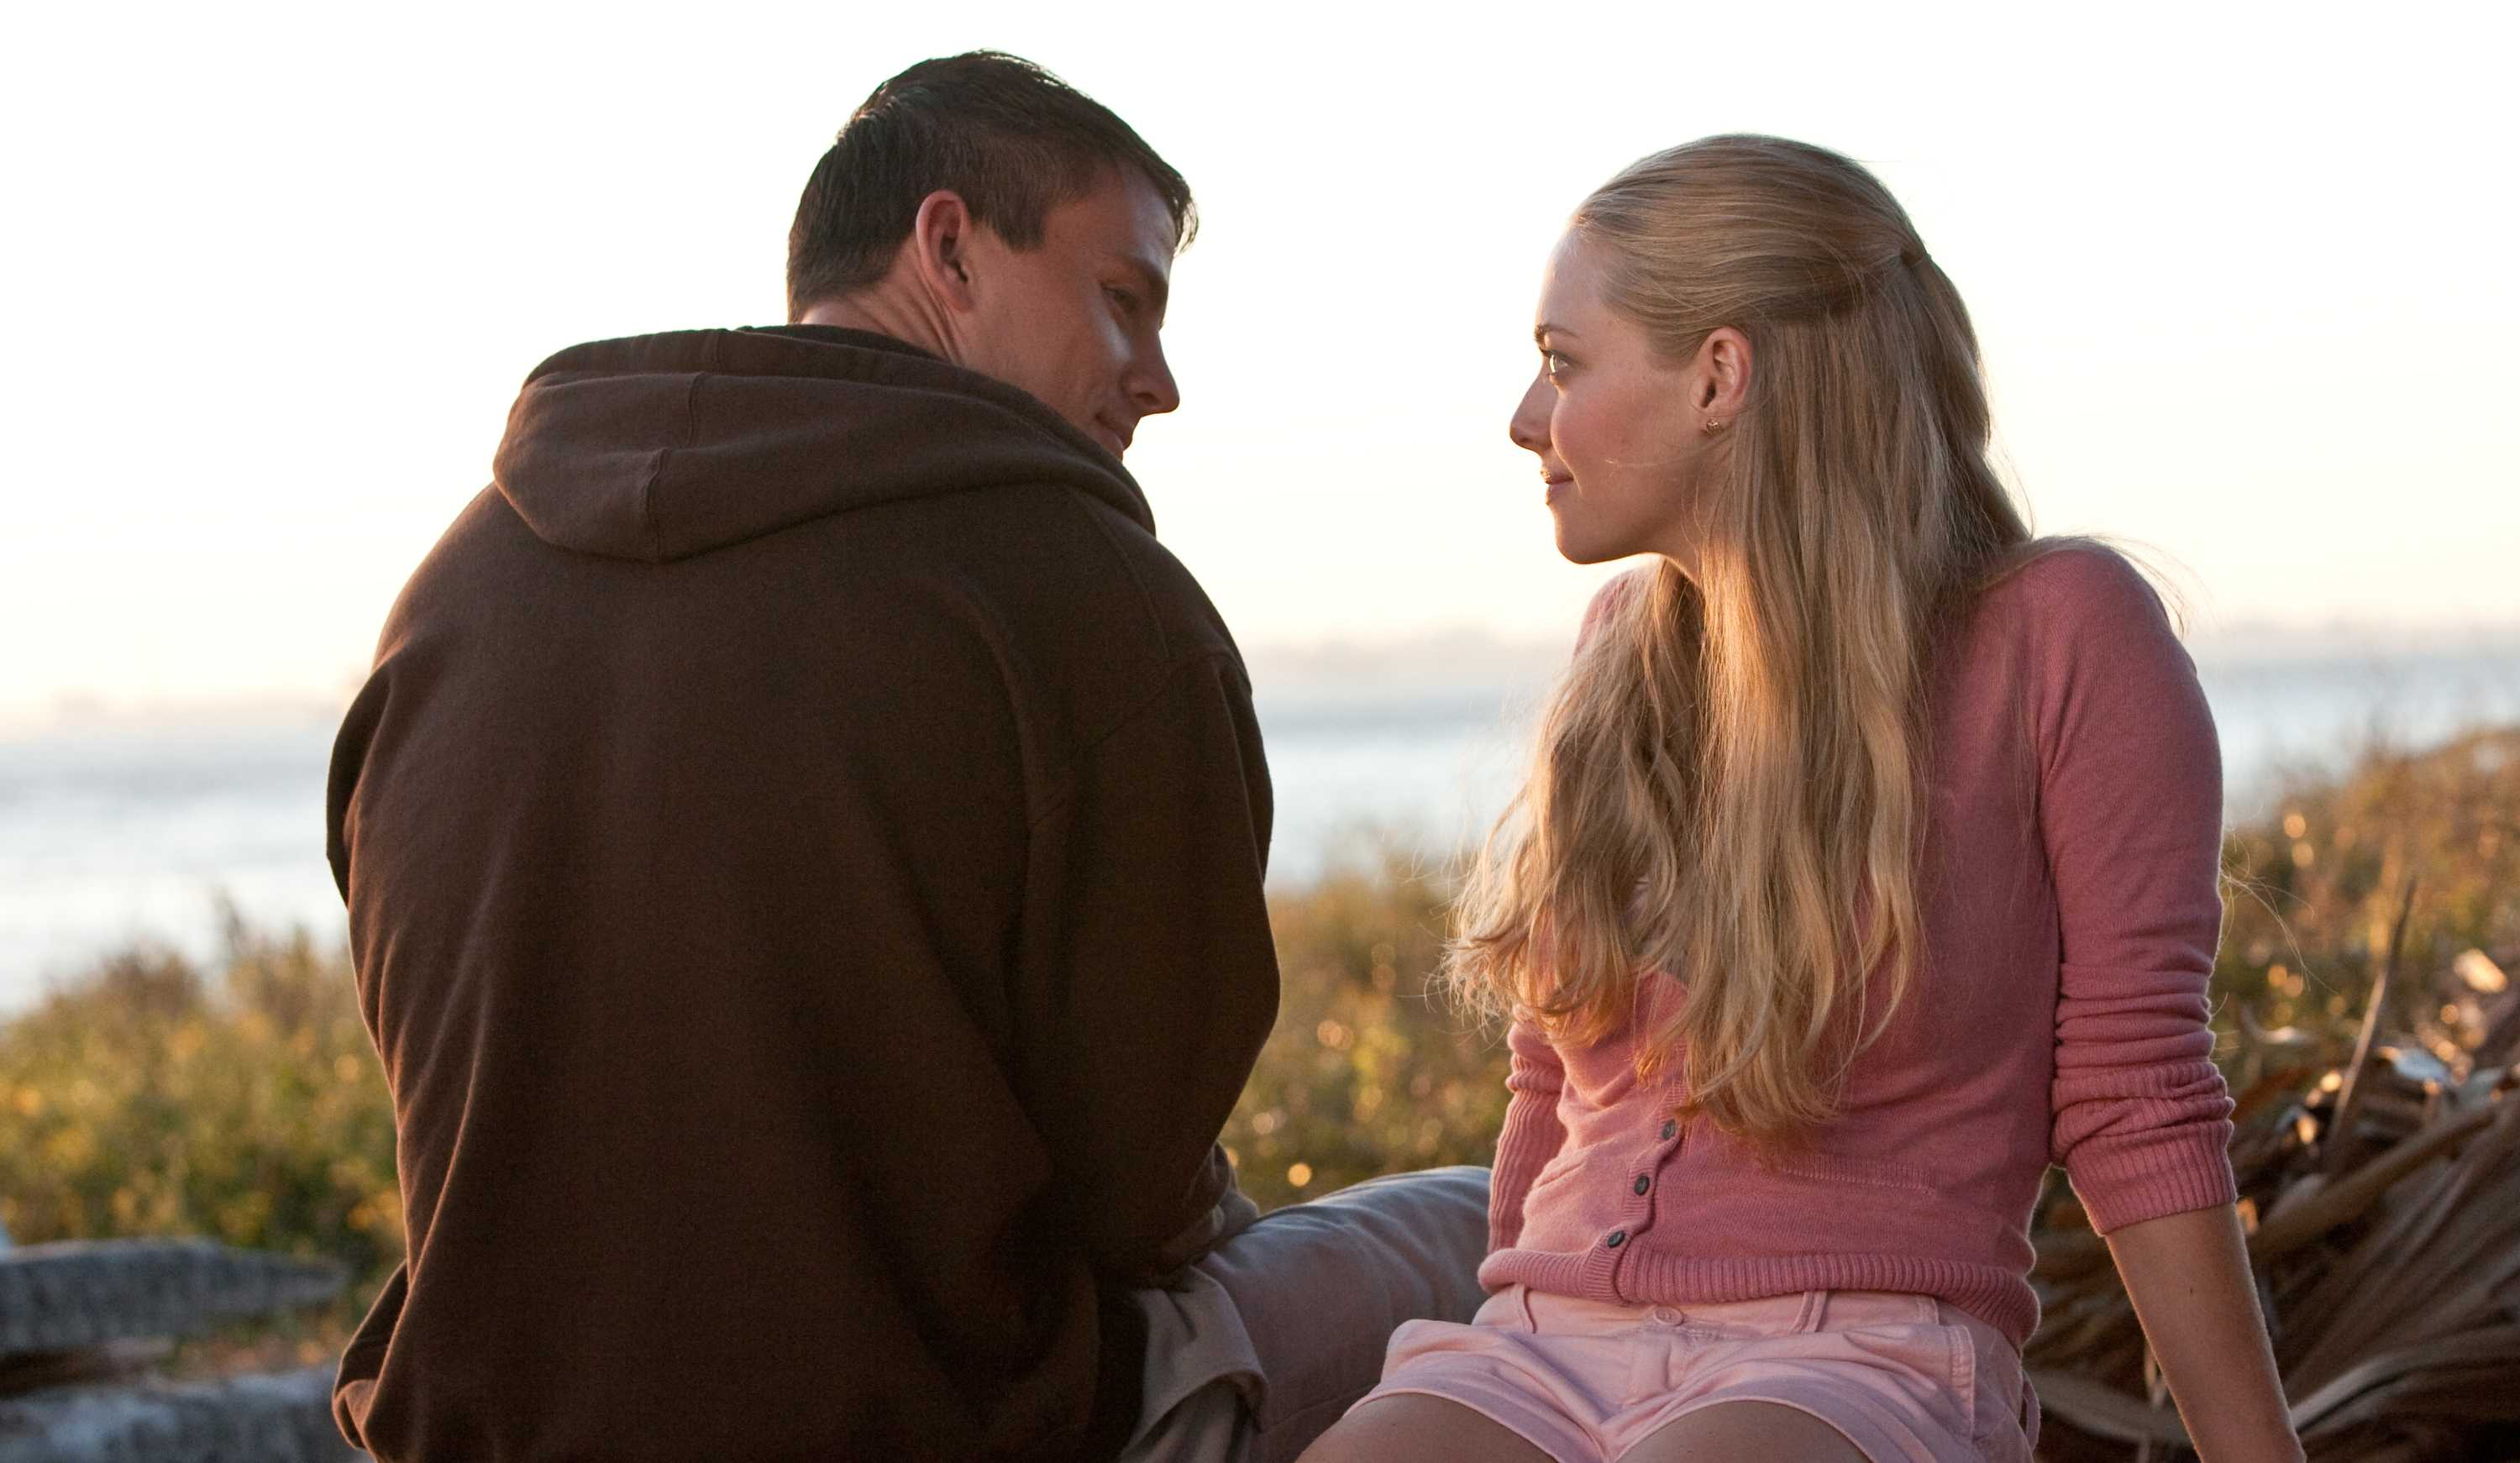 Channing Tatum (left) and Amanda Seyfried star in Screen Gems' romantic drama DEAR JOHN.